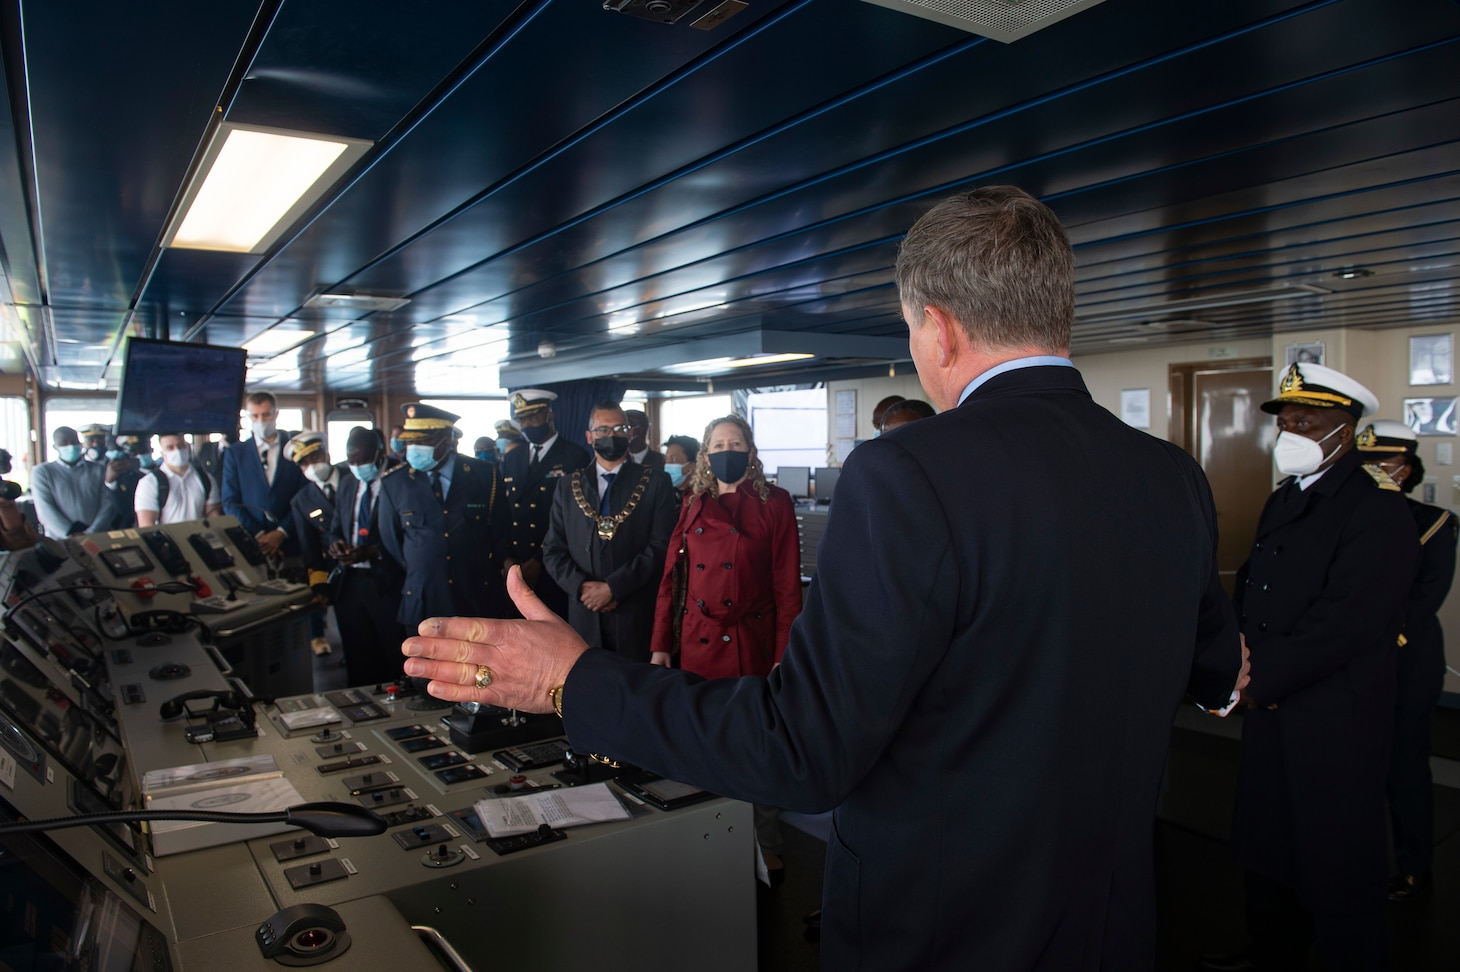 """Military Sealift Command Ship Master Joseph Darlak, right, addresses Jessica Long, chargé d'affaires, U.S. embassy in Namibia, second from right, His Worship Trevino Forbes, Mayor of Walvis Bay, third from right, Namibian Navy Rear Adm. Alweendo Paulus Amungulu, fourth from right, and a group of Namibian Navy leadership and U.S. embassy personnel during a tour of the Expeditionary Sea Base USS Hershel """"Woody"""" Williams (ESB 4), Sept. 17, 2021."""